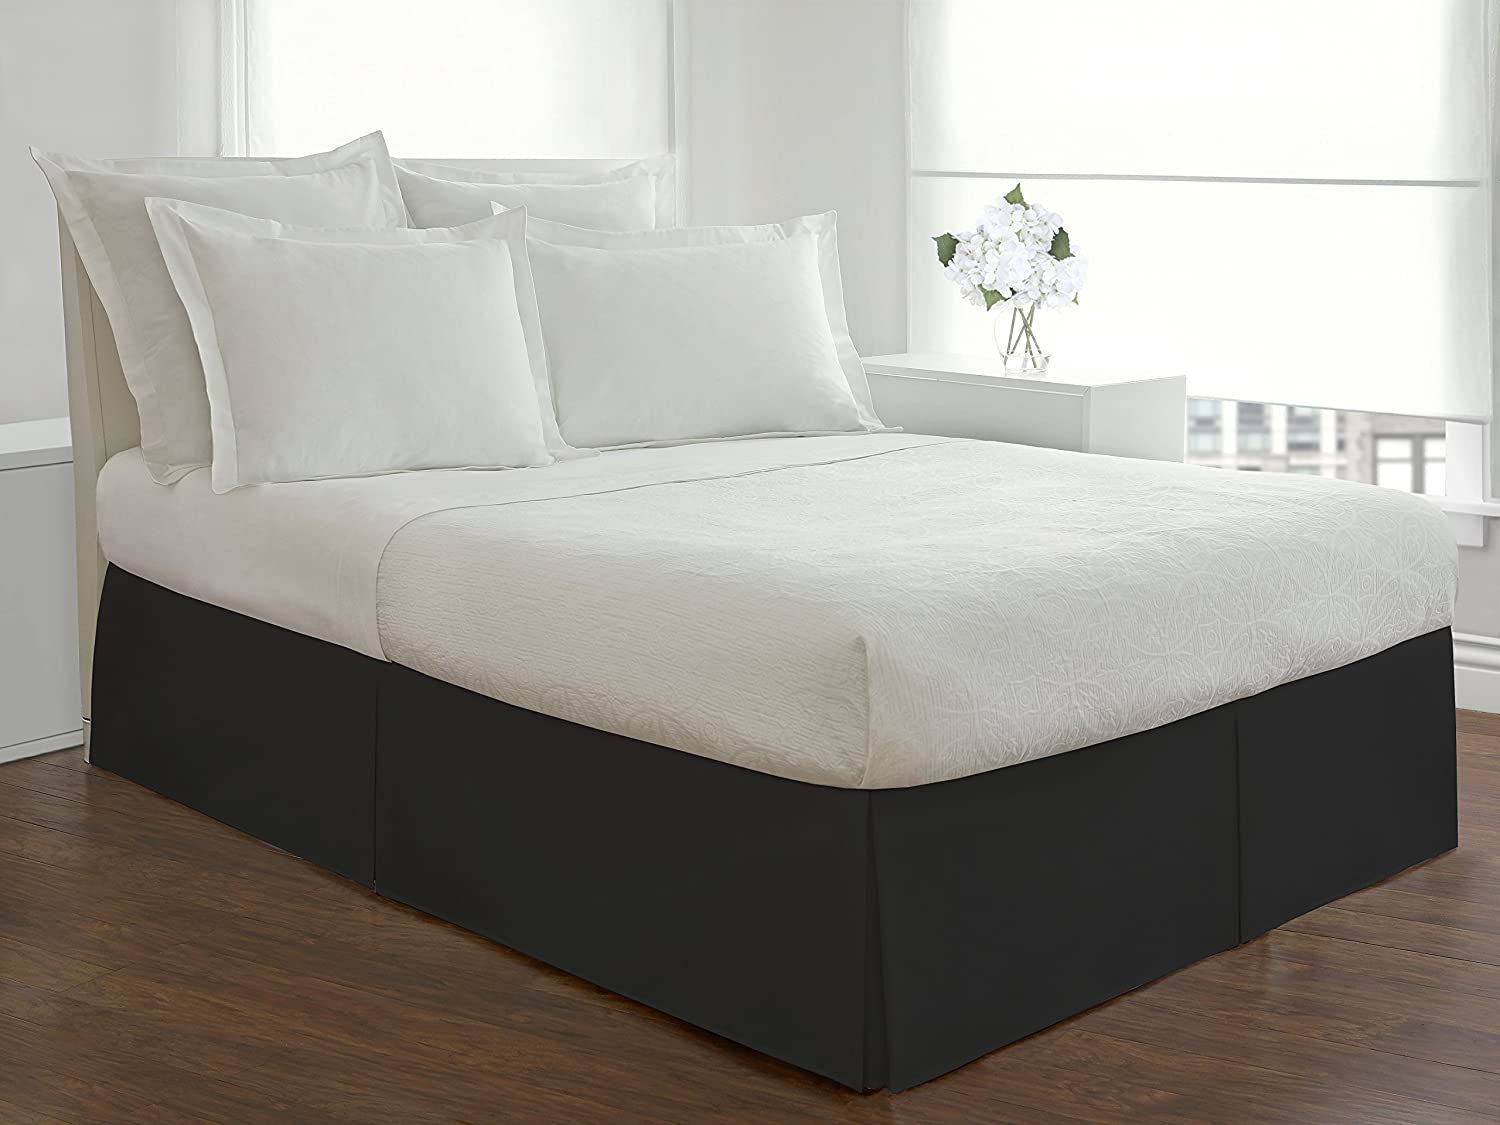 This is an easy fit elastic wrap around bed skirt/dust ruffle. Bed skirt is a one size fit for queen/king/ and cal king sizes. This dust ruffle provides a beautiful look all around your bed without having to lift your mattress (no platform).